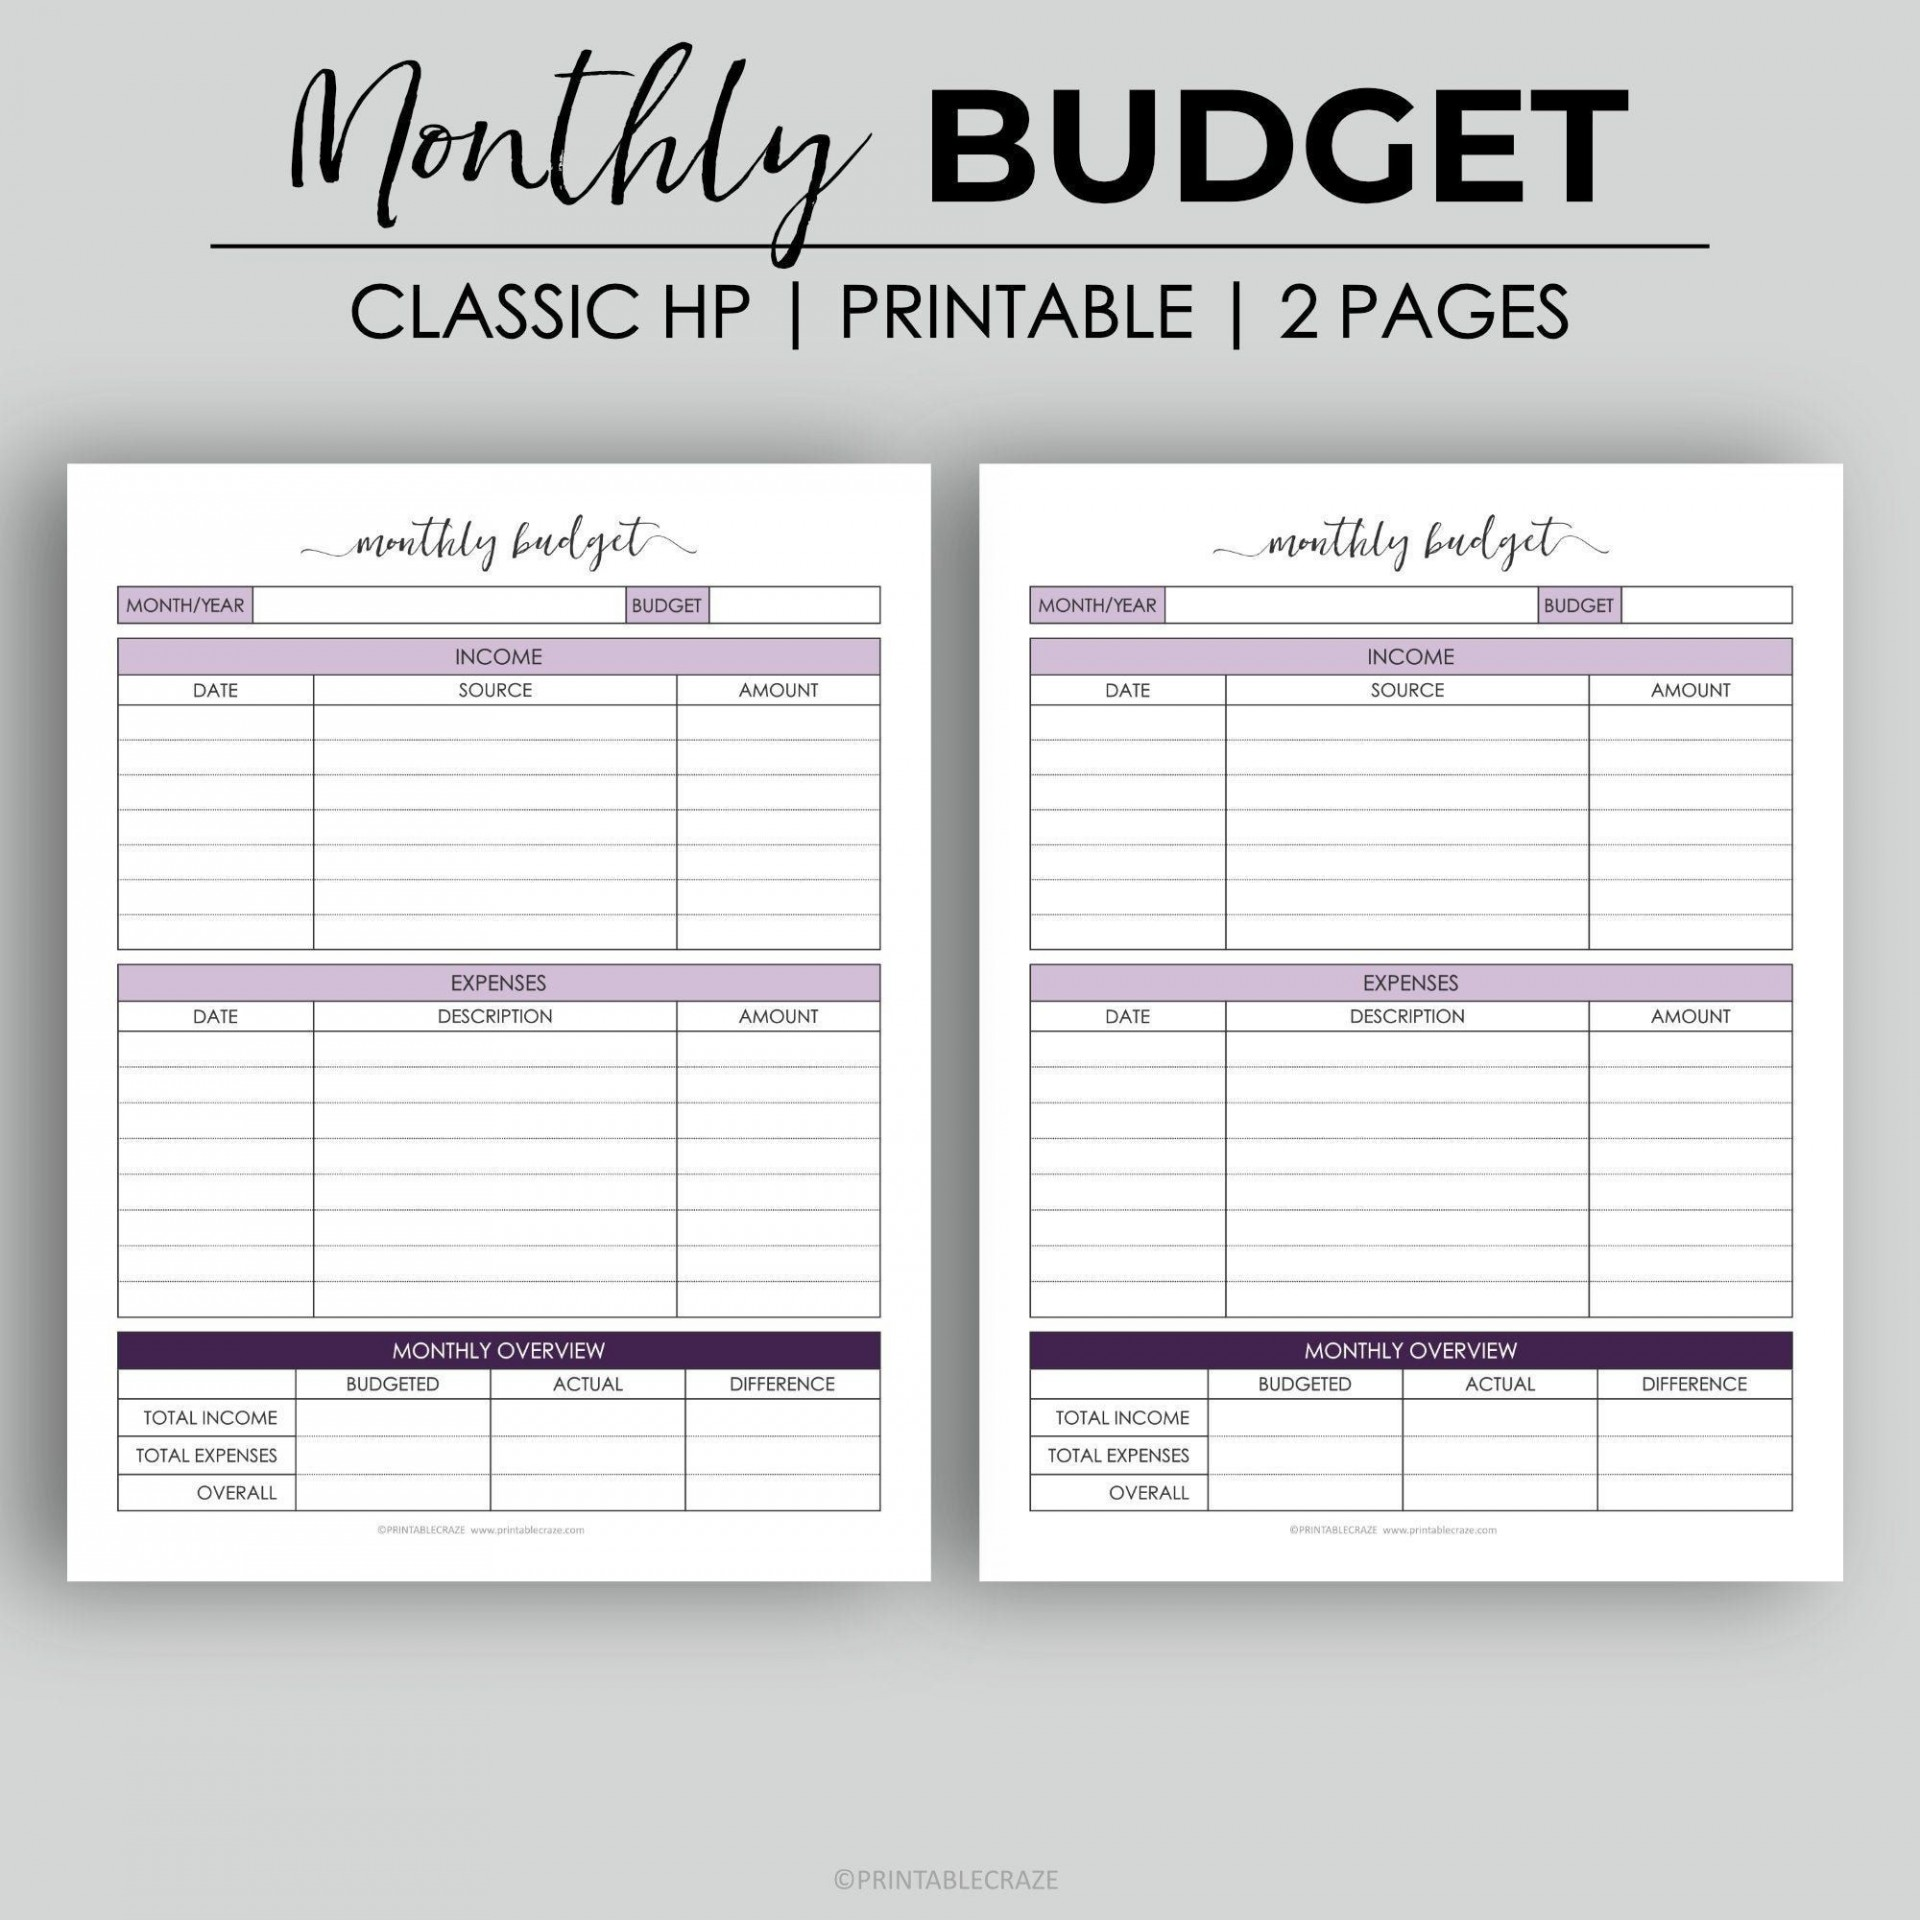 004 Magnificent Free Monthly Budget Template Printable High Definition  Simple Worksheet Household Planner Uk1920